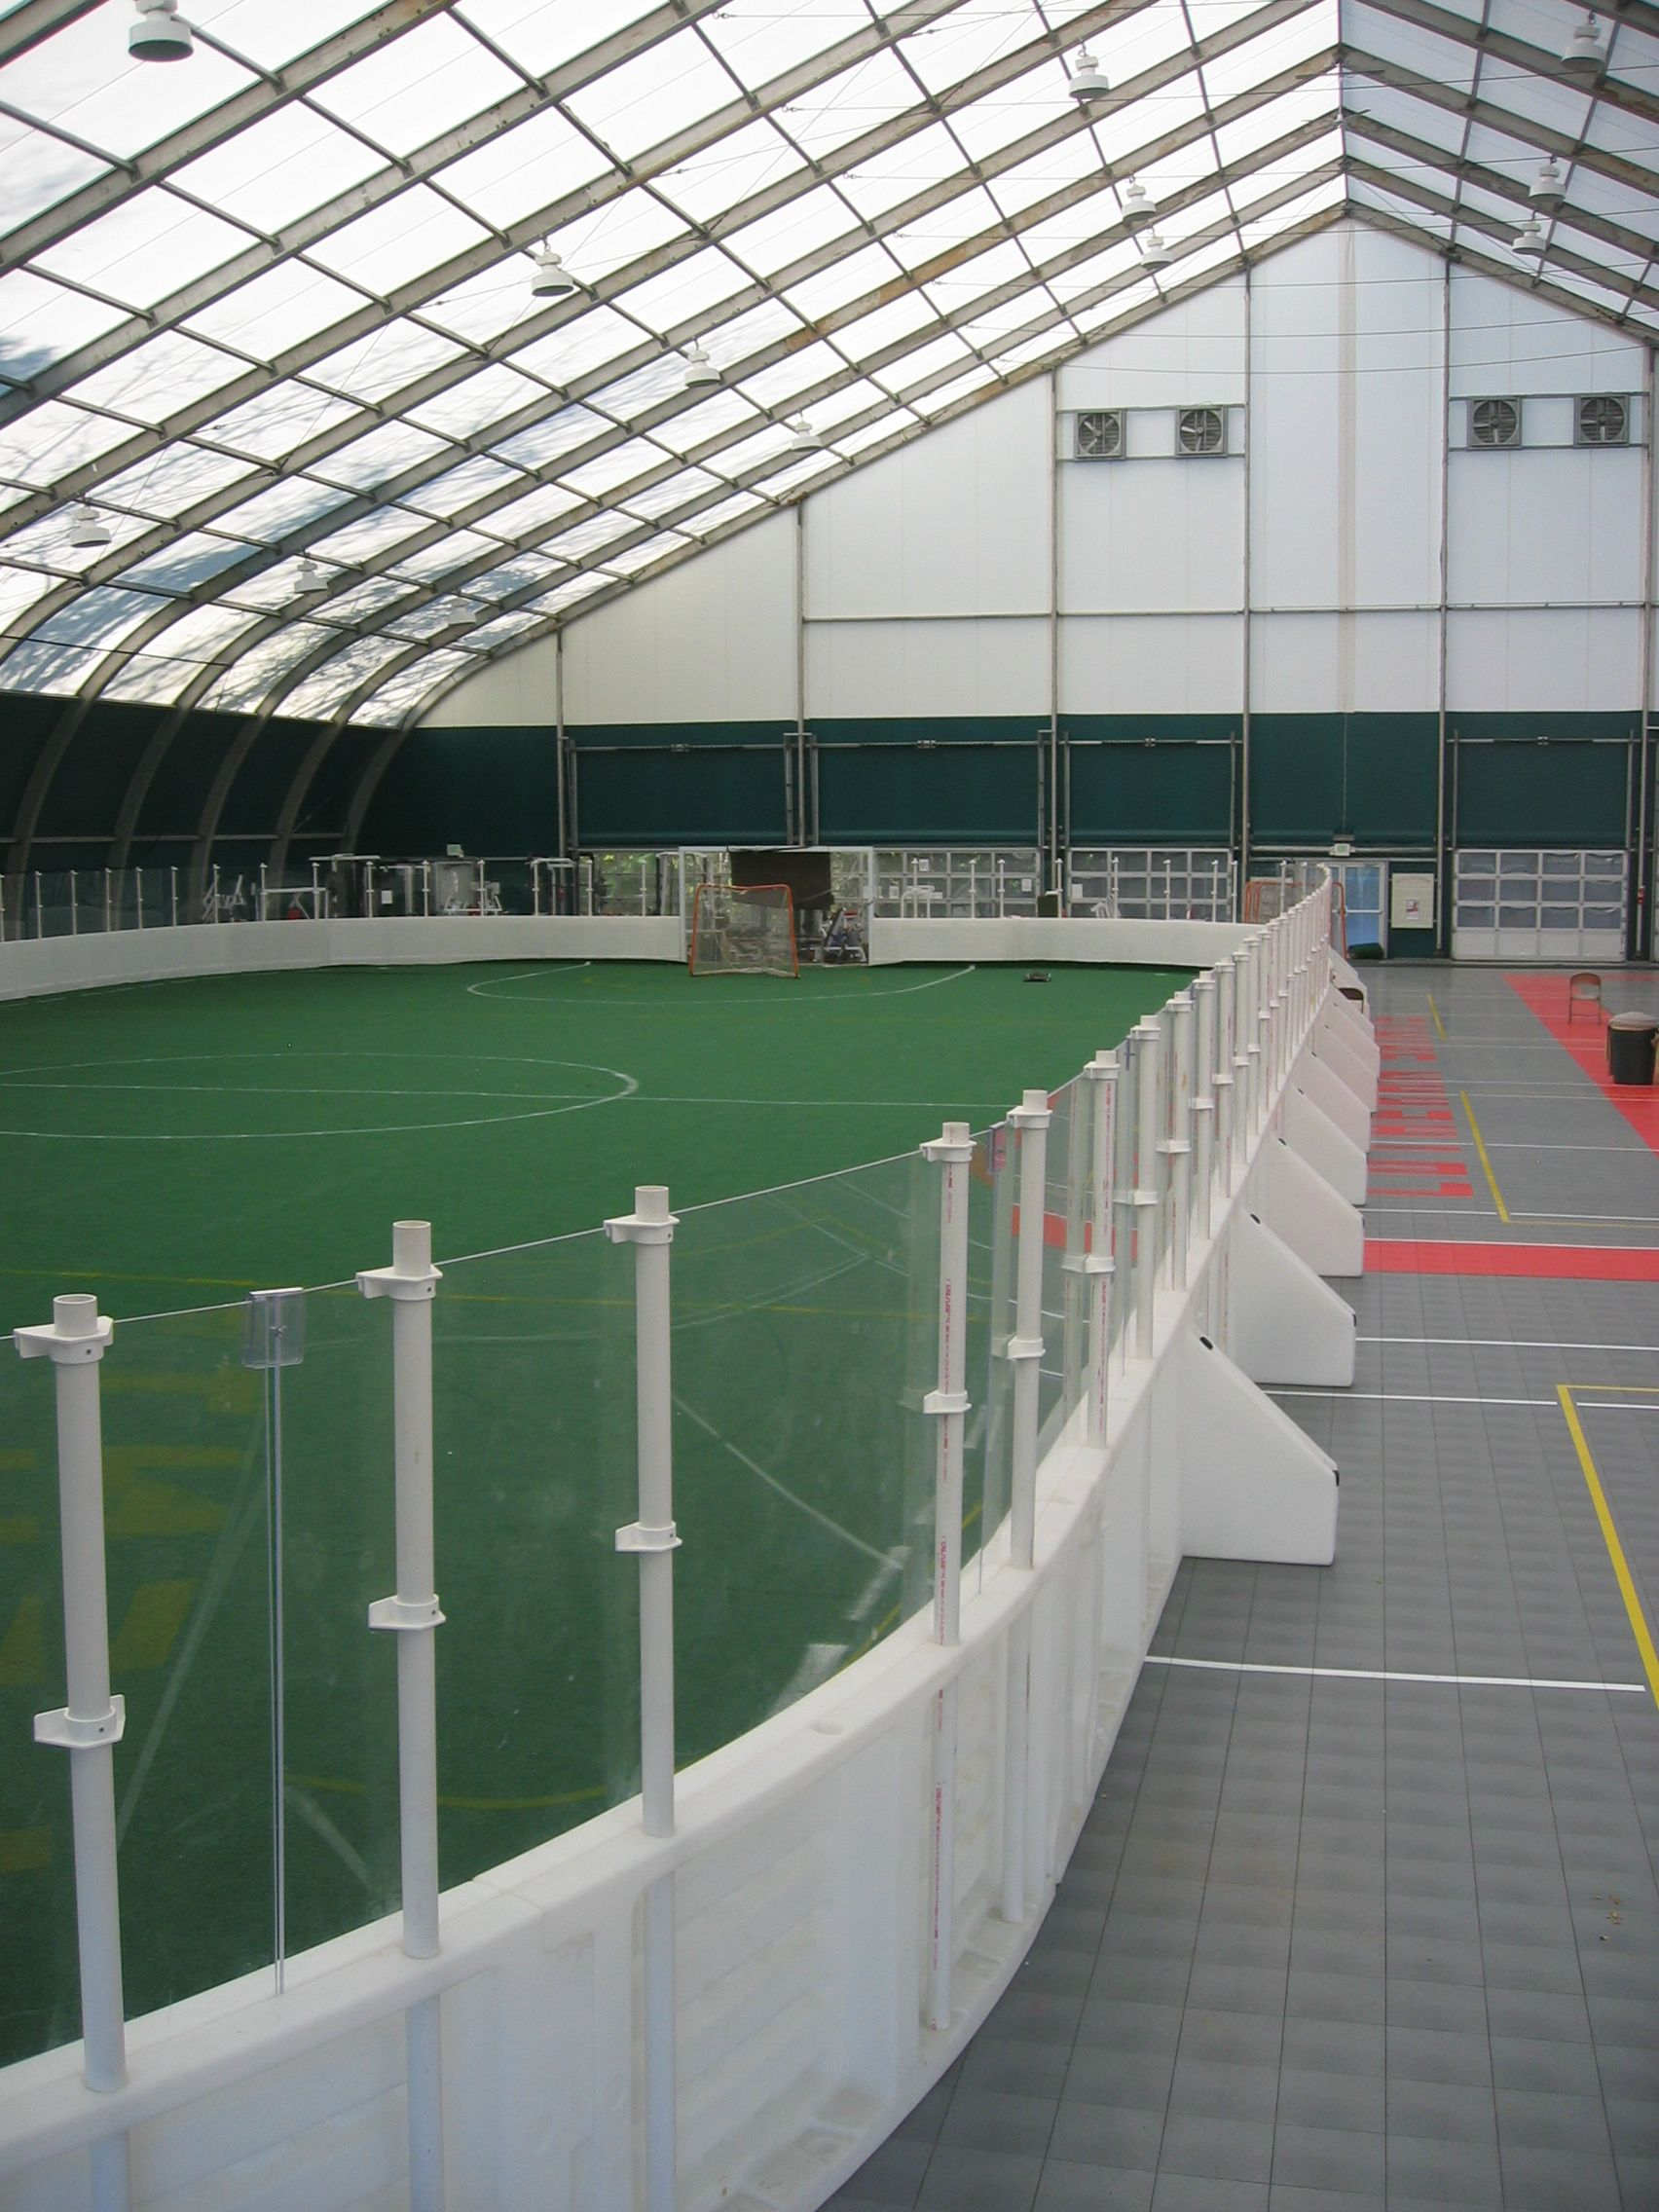 Box lacrosse rink boards for sale portable or permanent